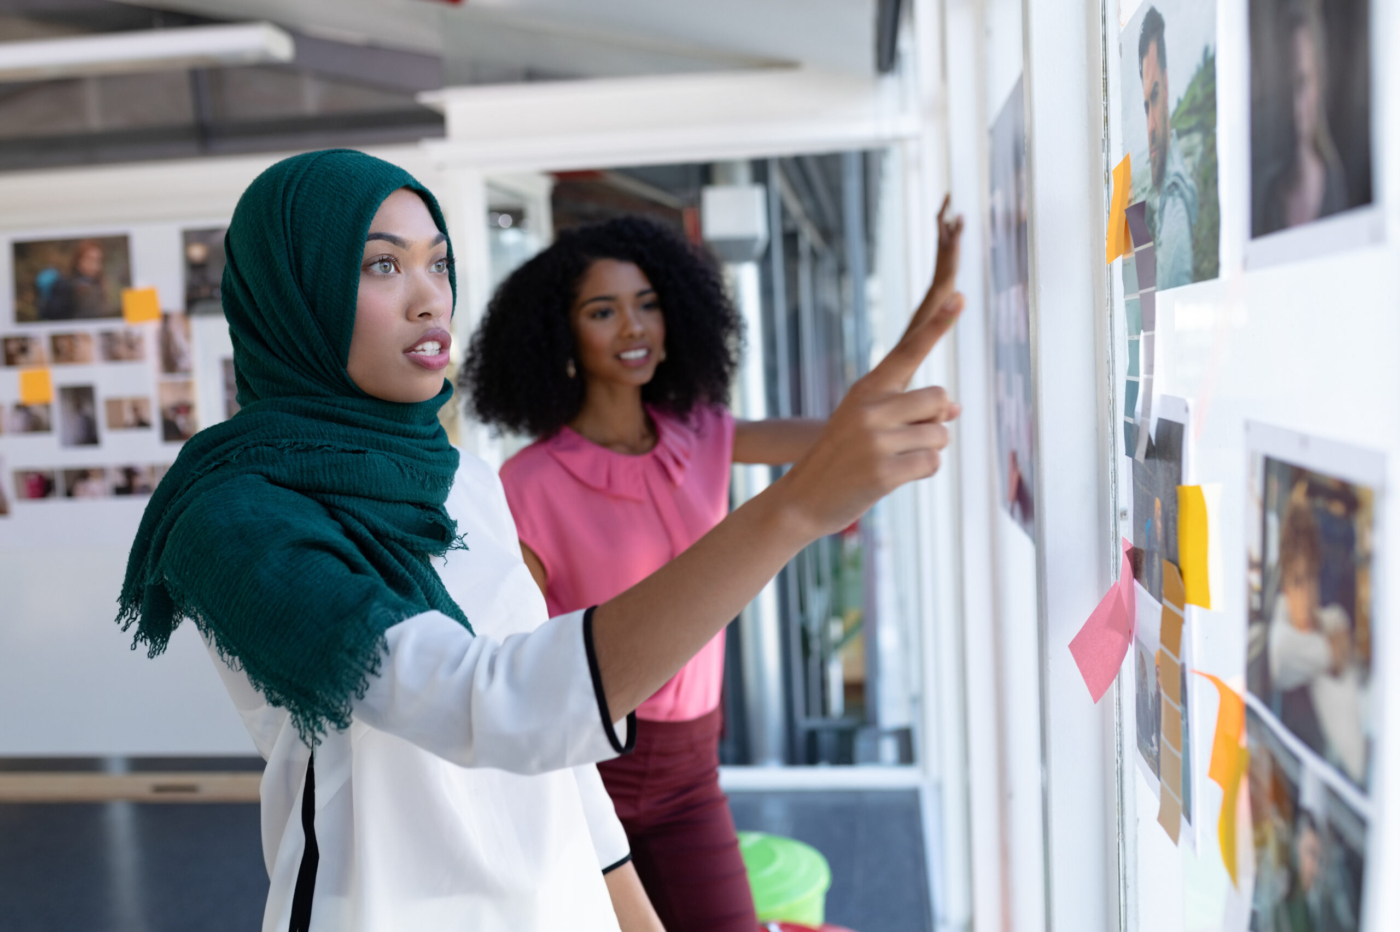 New Report: Challenges and Opportunities for Women Entrepreneurs